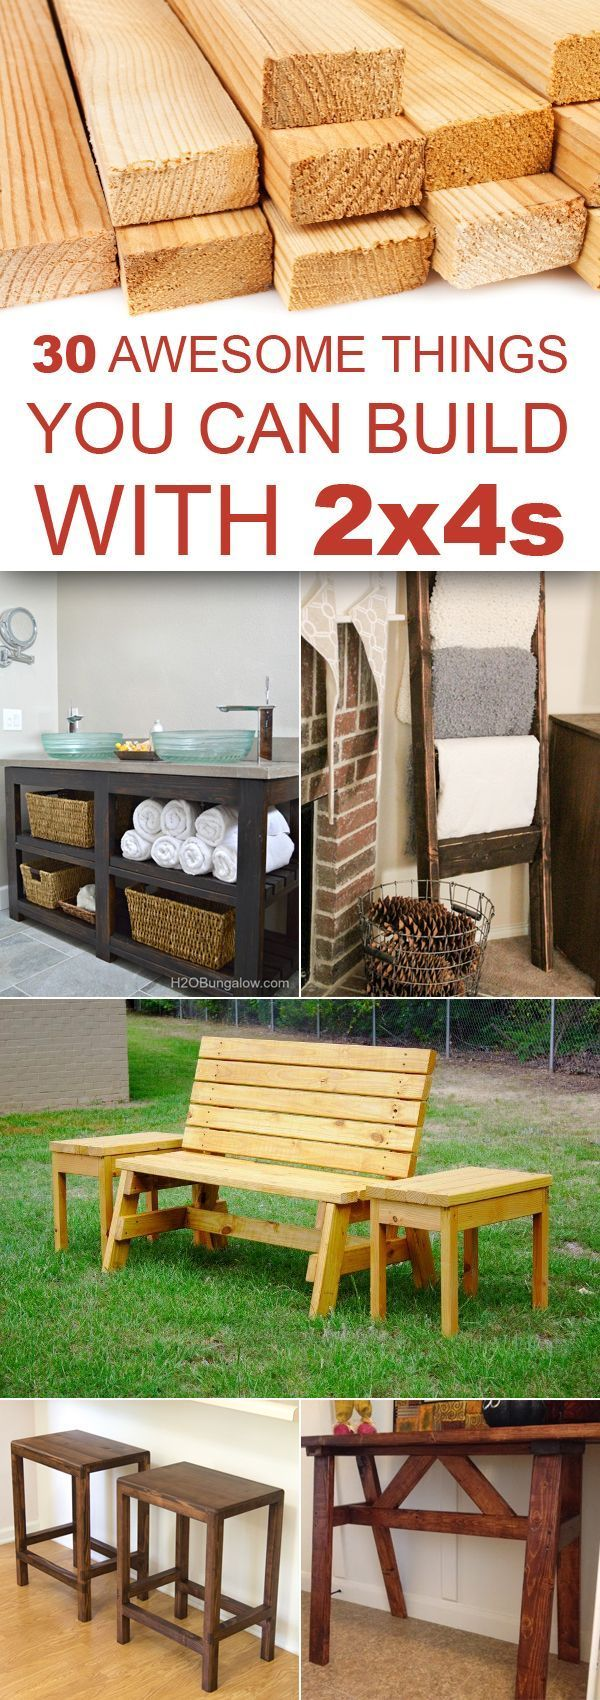 30 Awesome Things You Can Build With 2x4s Woodworking